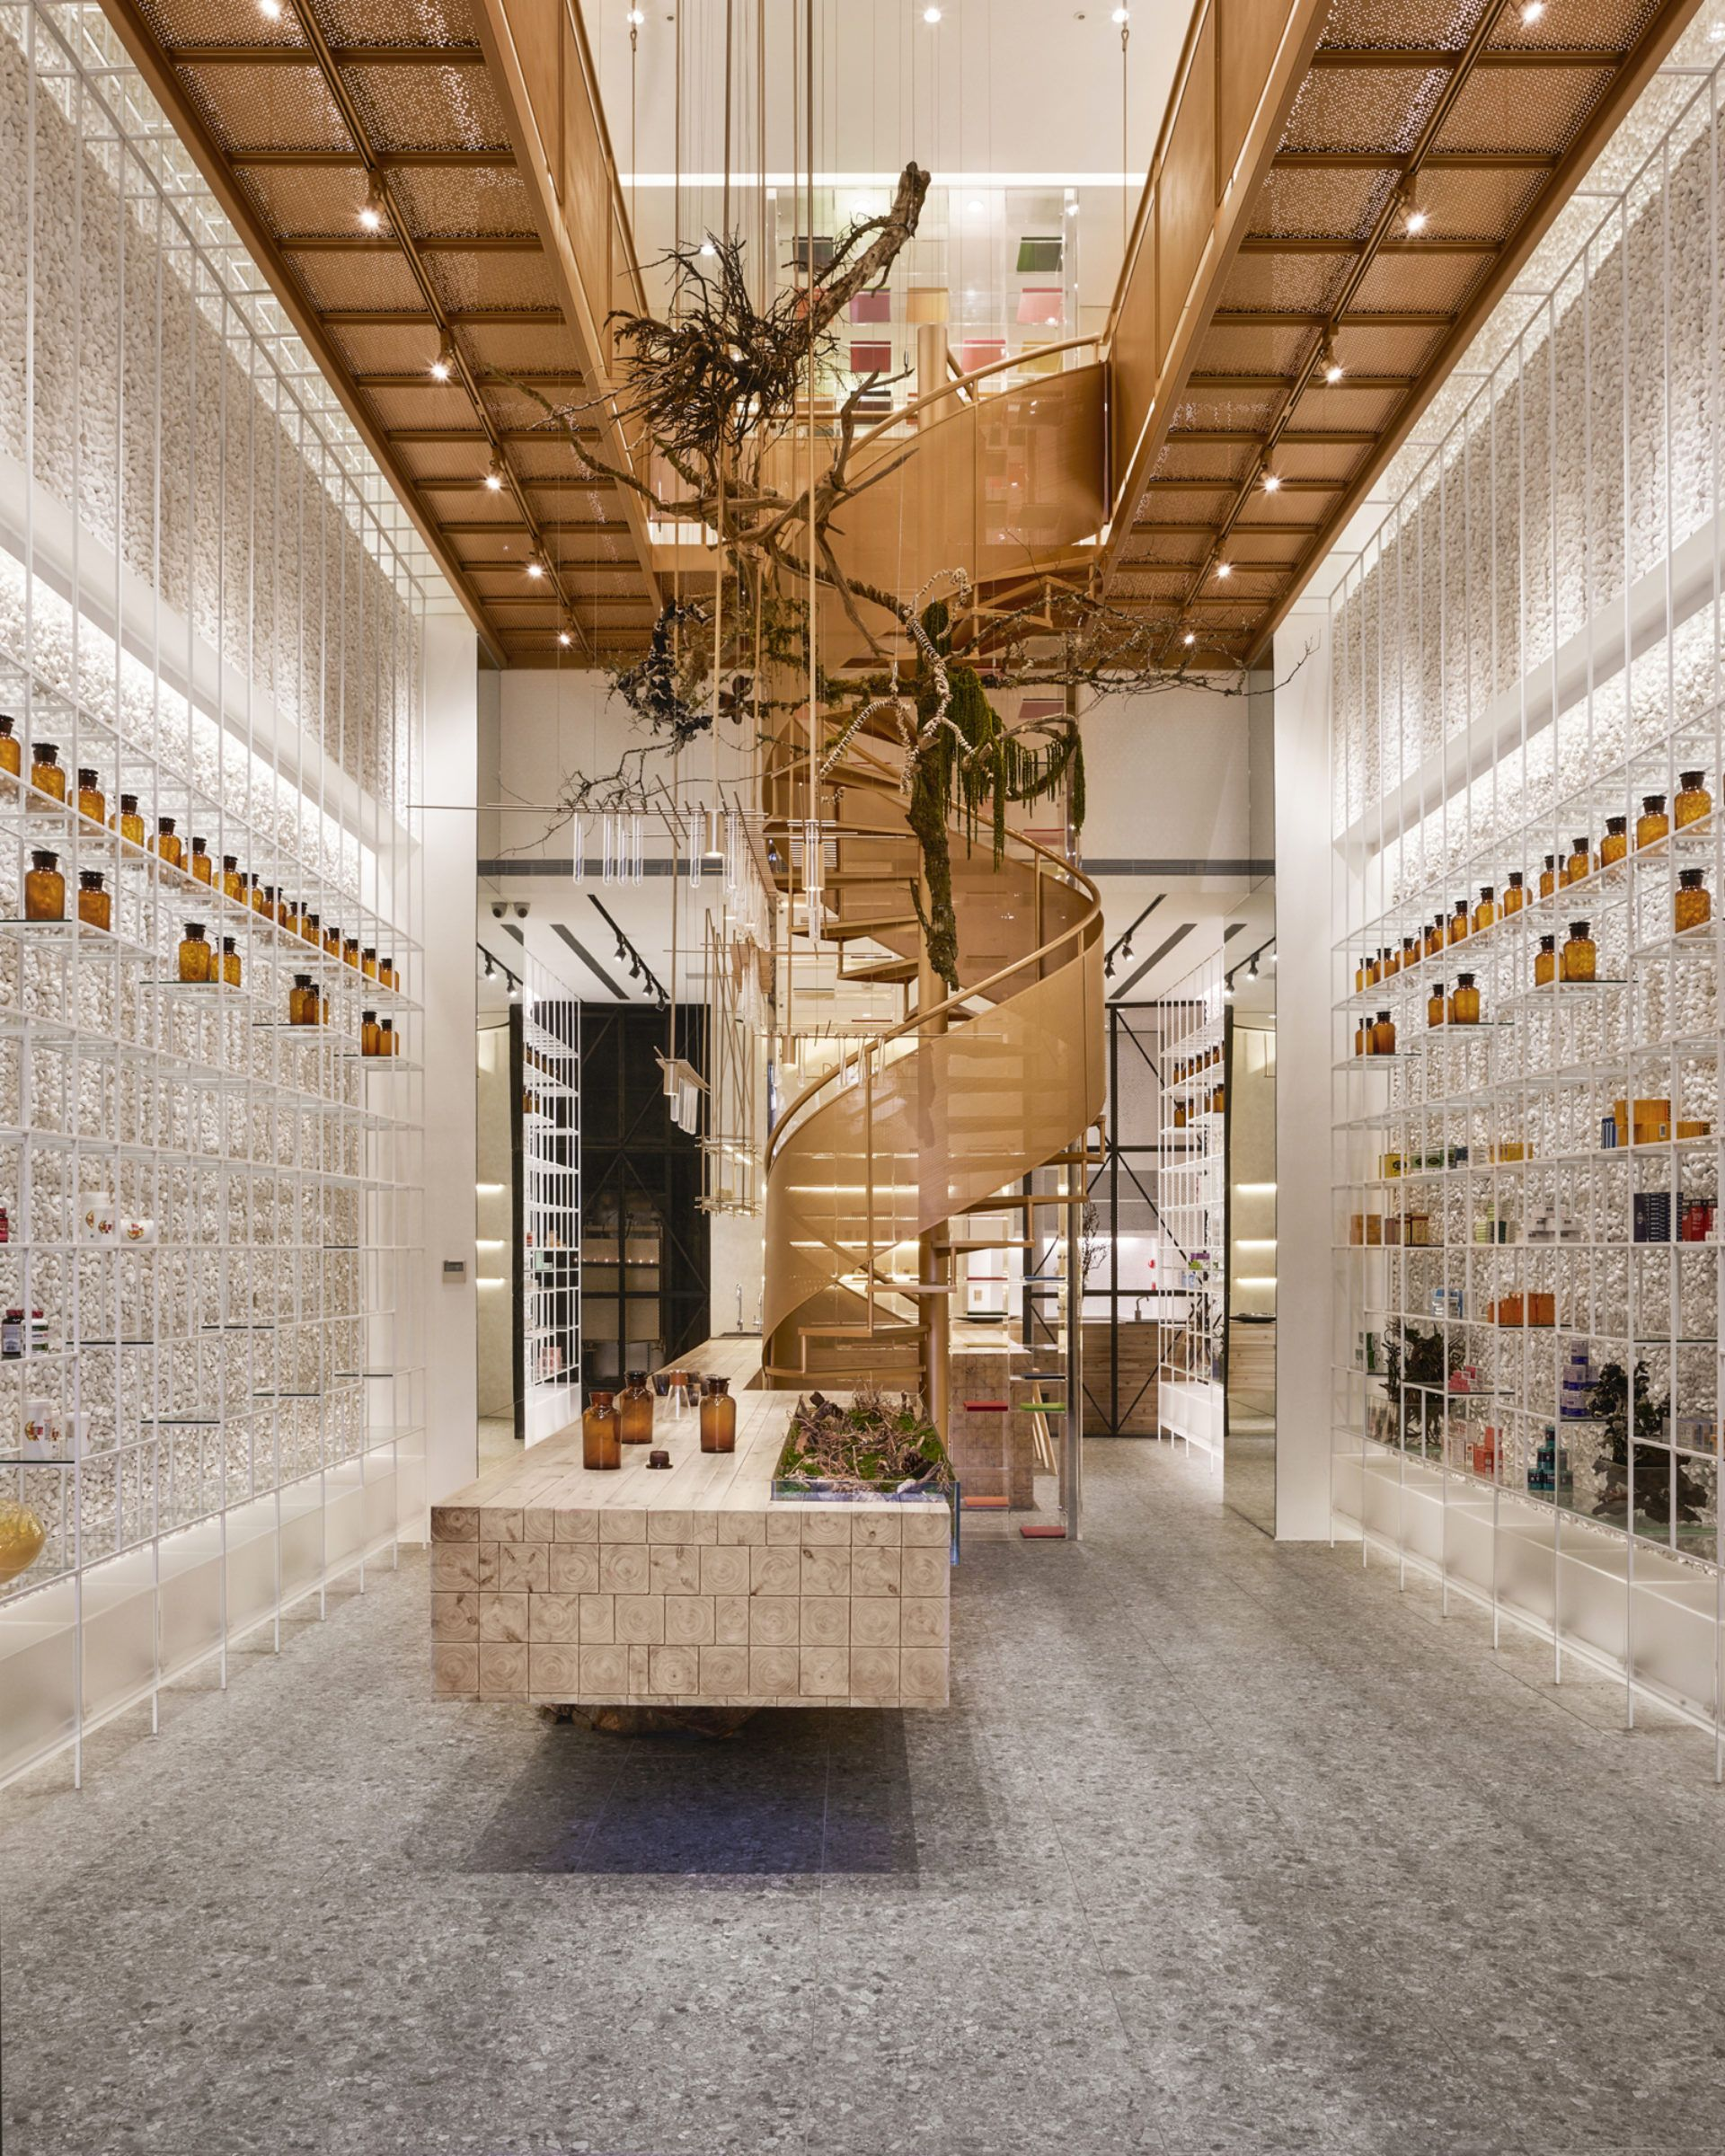 Frame Awards 2018 Nomineemolecure Pharmacy, Taiwan Designed By Waterfrom Design